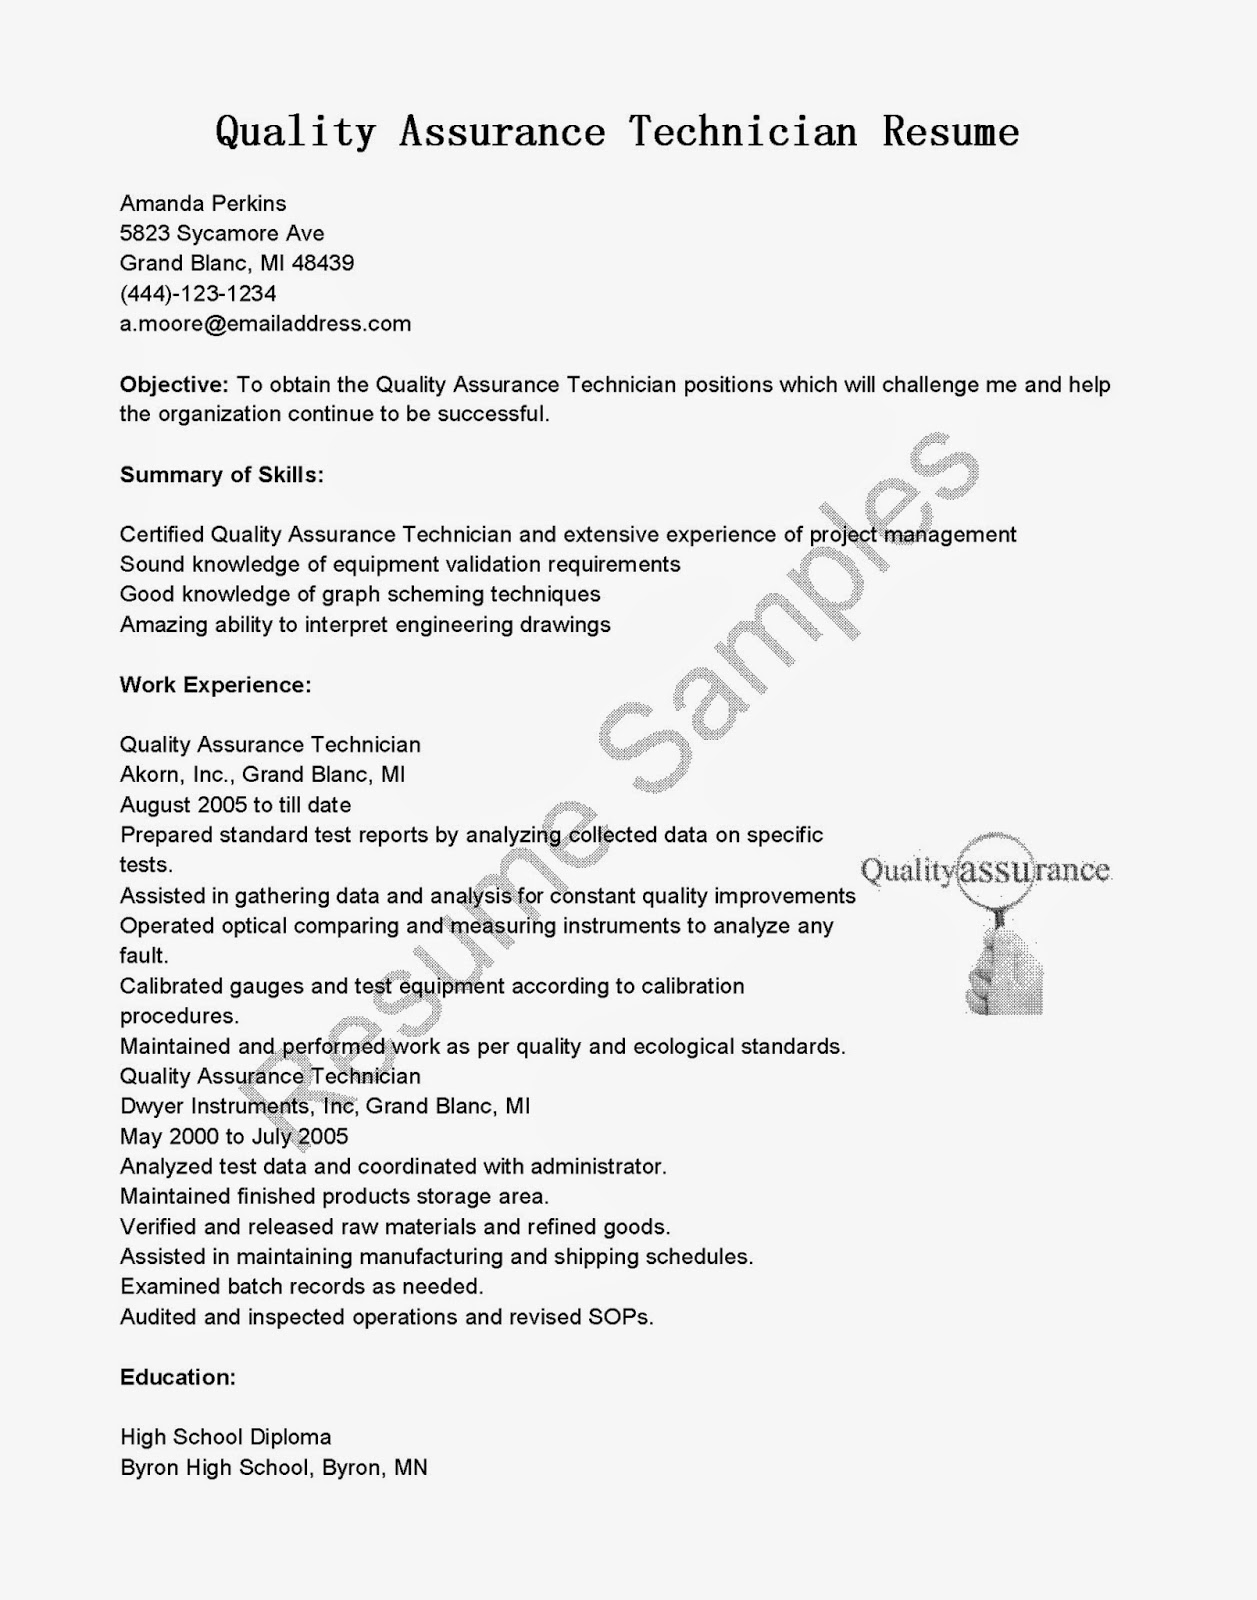 Resume Samples Quality Assurance Technician Resume Sample